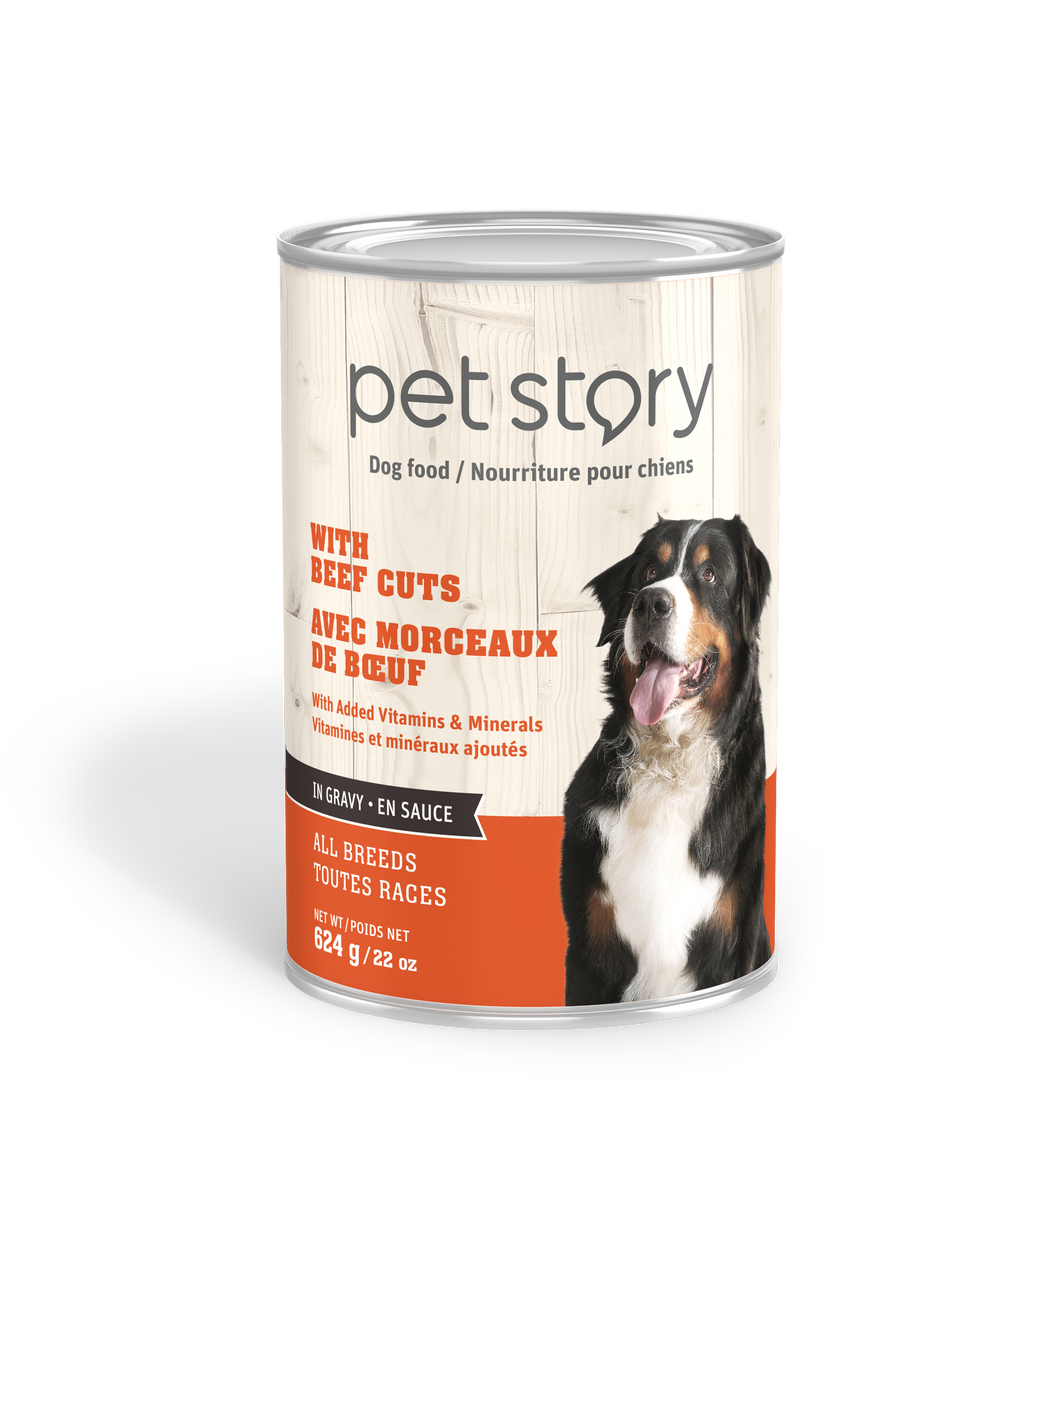 Wet food with beef cuts for adult dogs - 624g